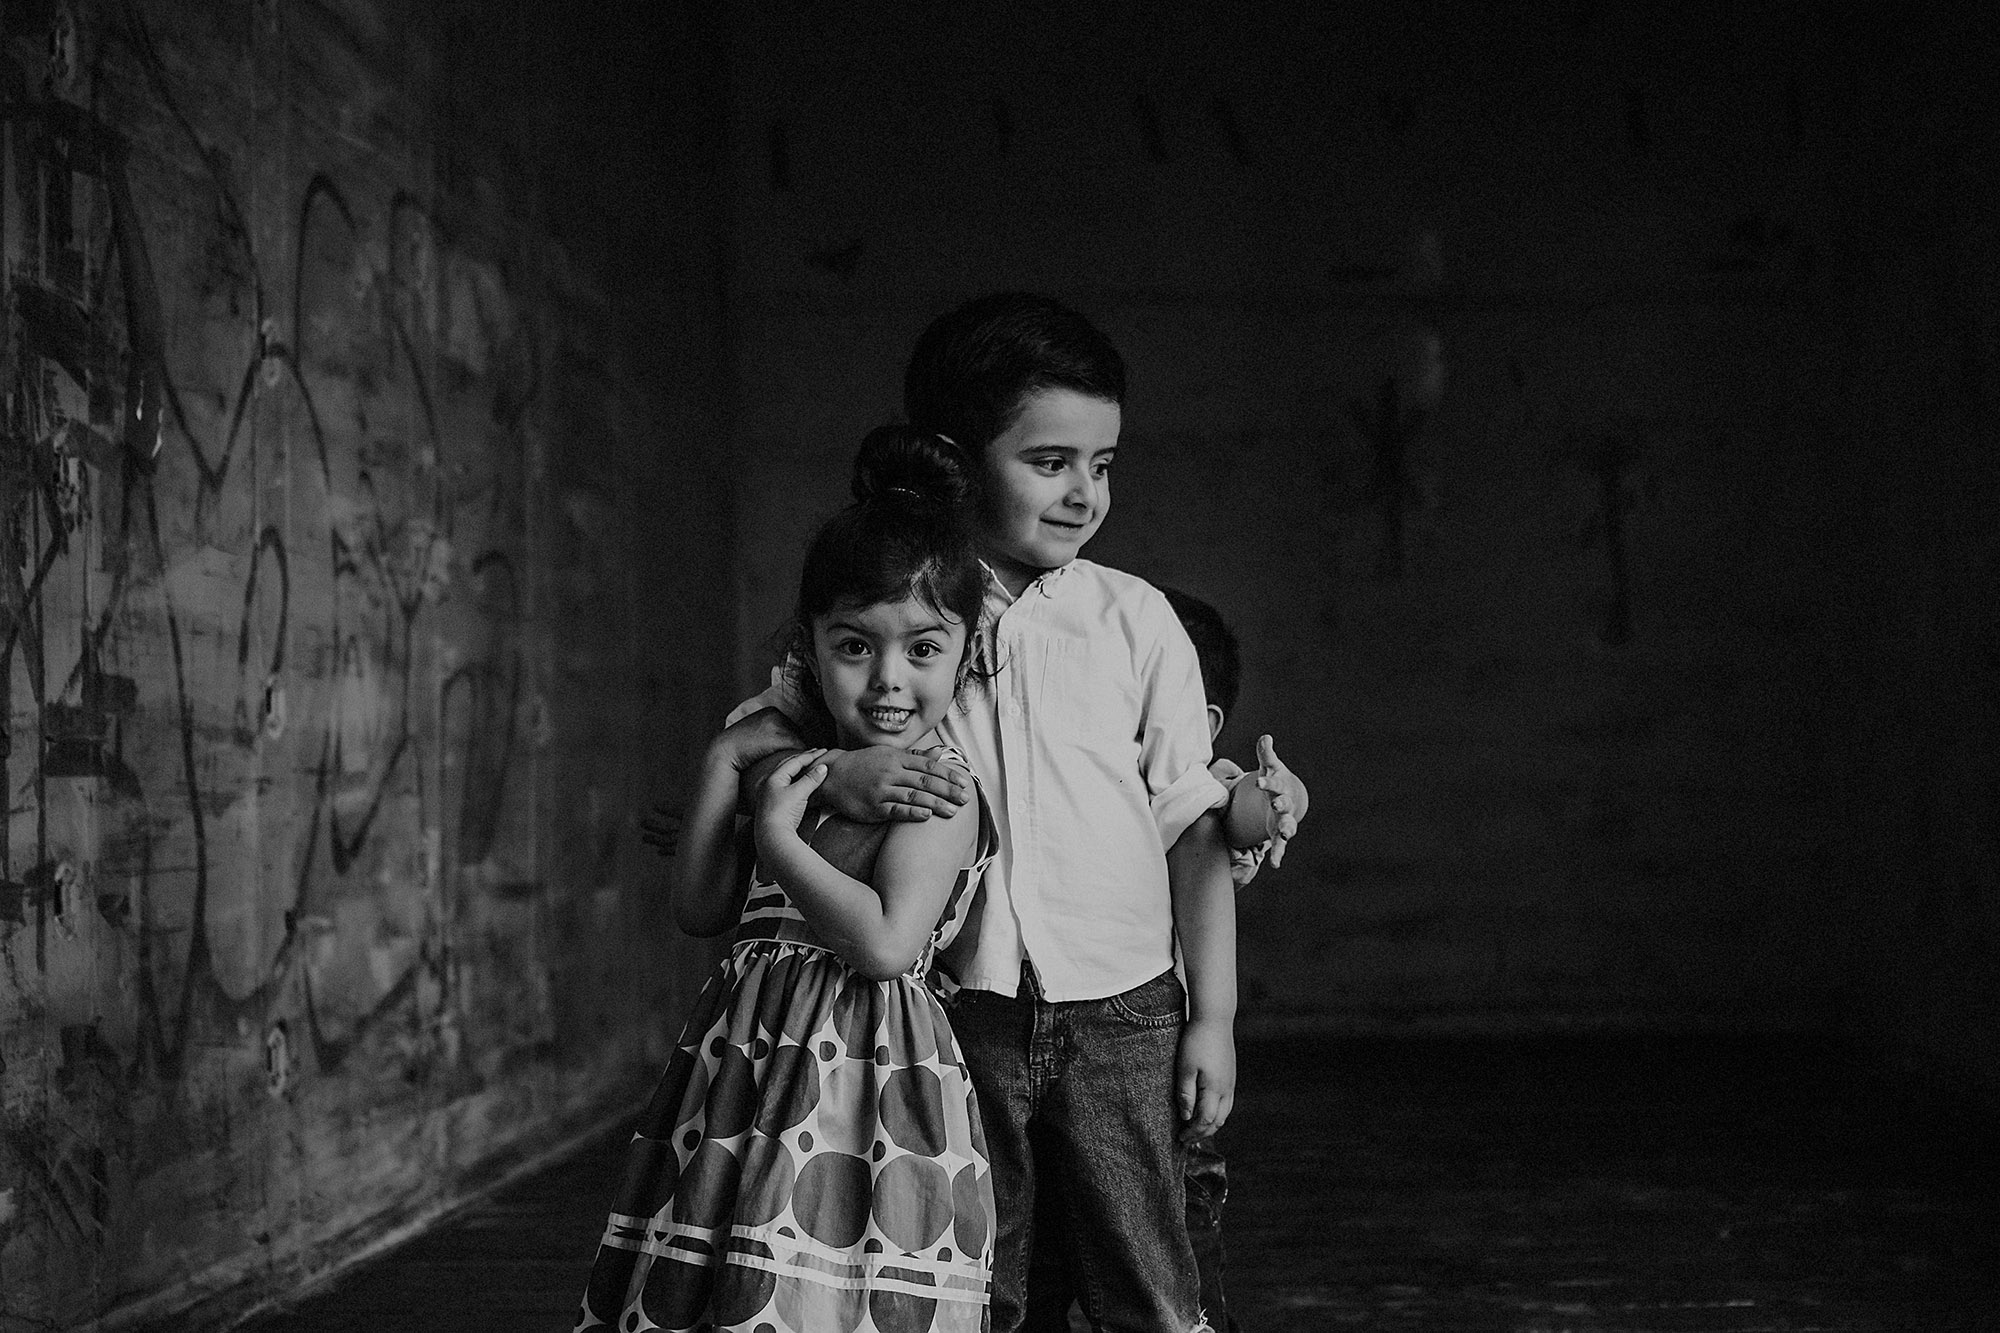 Chatos_portraits_kids_5.jpg